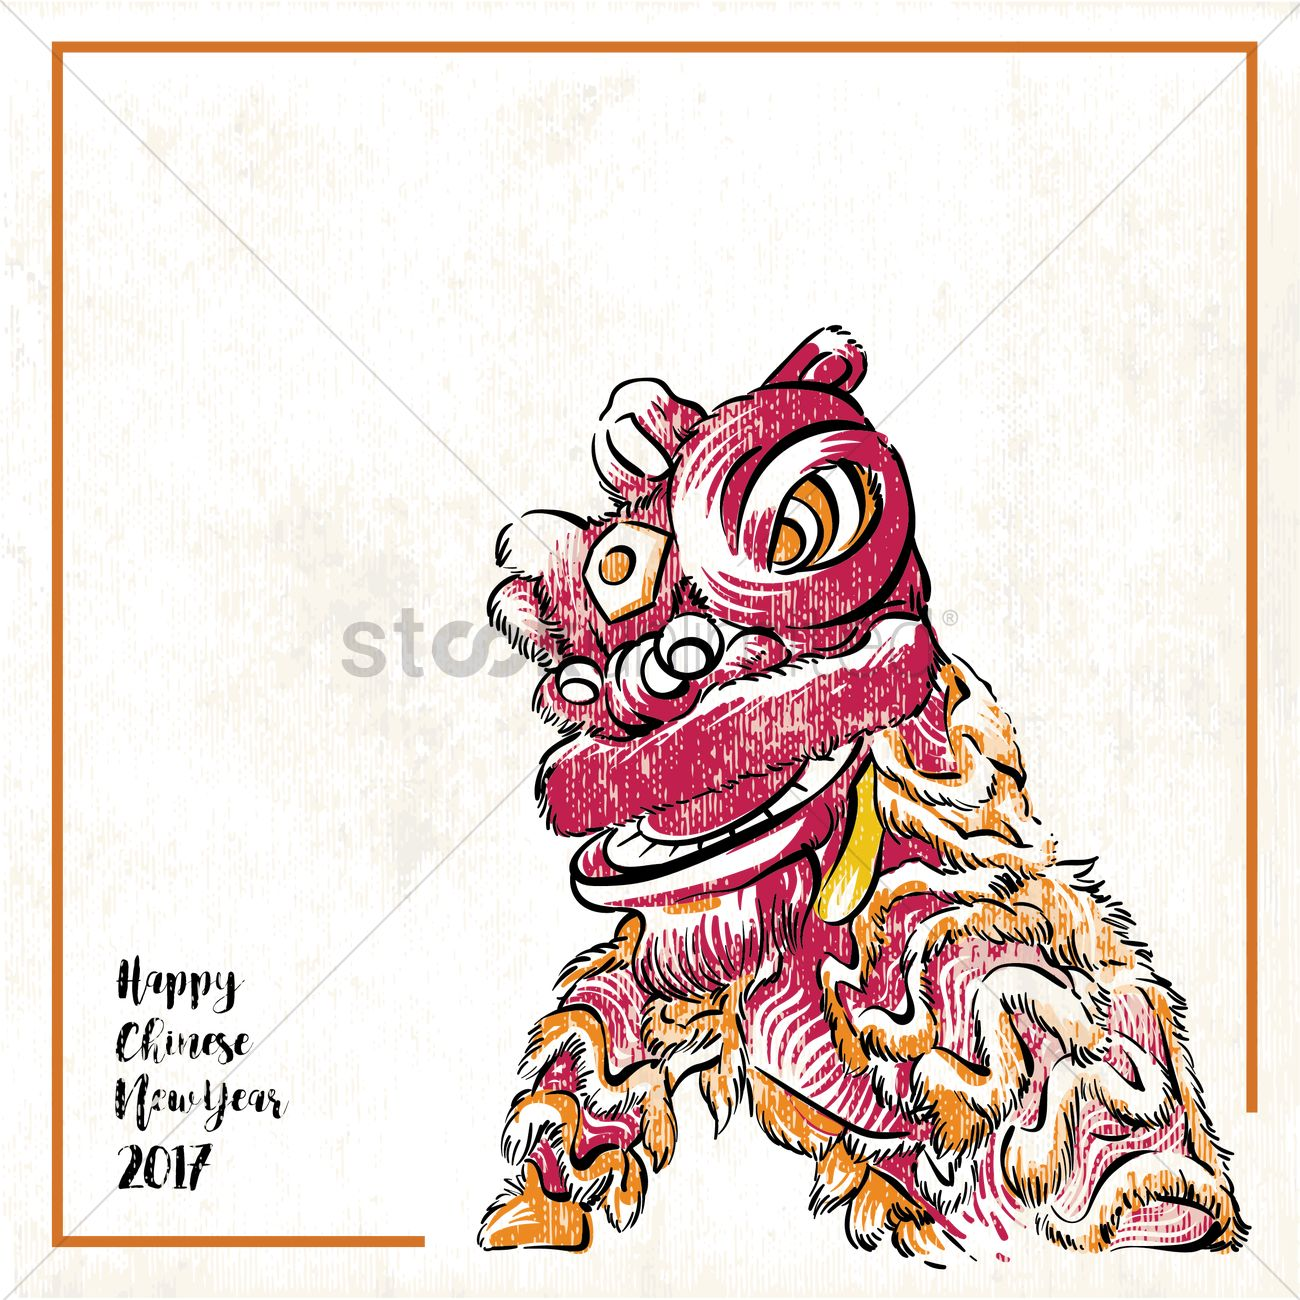 2017 chinese new year greeting with lion dance vector image 2017 chinese new year greeting with lion dance vector graphic kristyandbryce Gallery